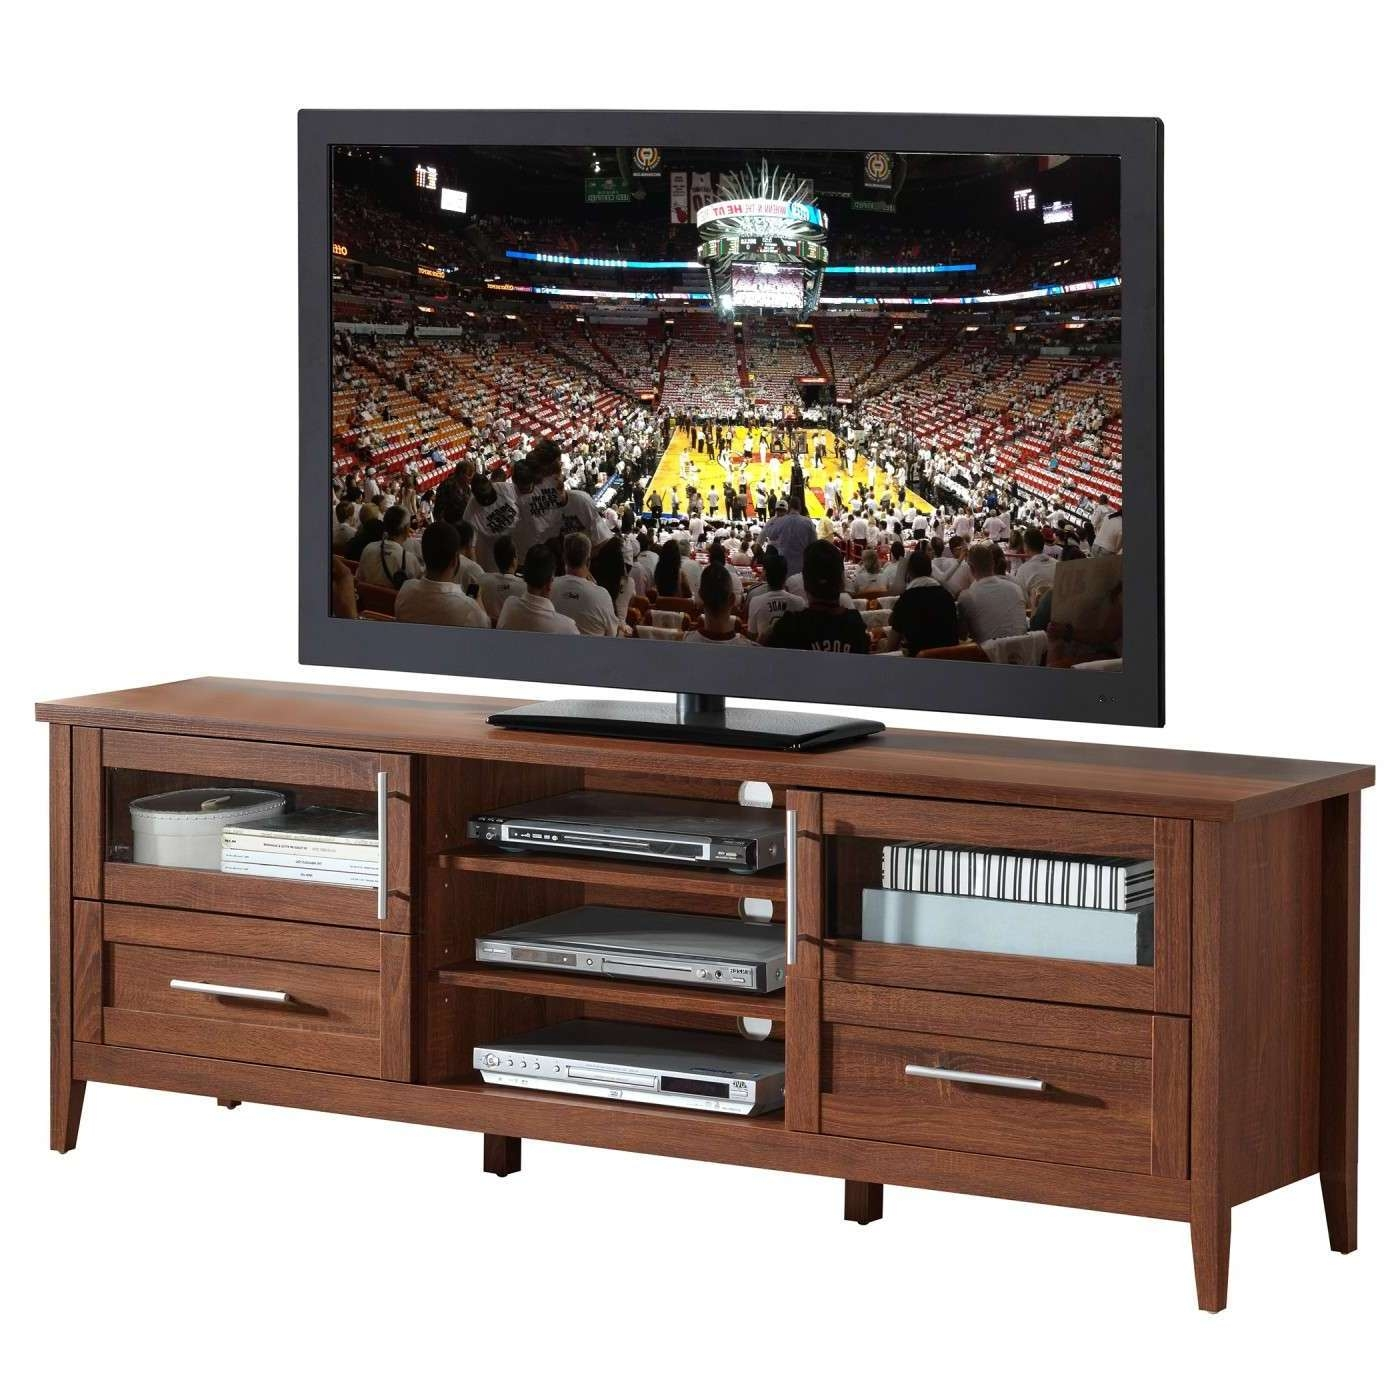 Techni Mobili Modern Oak Tv Stand With Storage For Tvs Up To 75 Pertaining To Modern Oak Tv Stands (View 12 of 15)